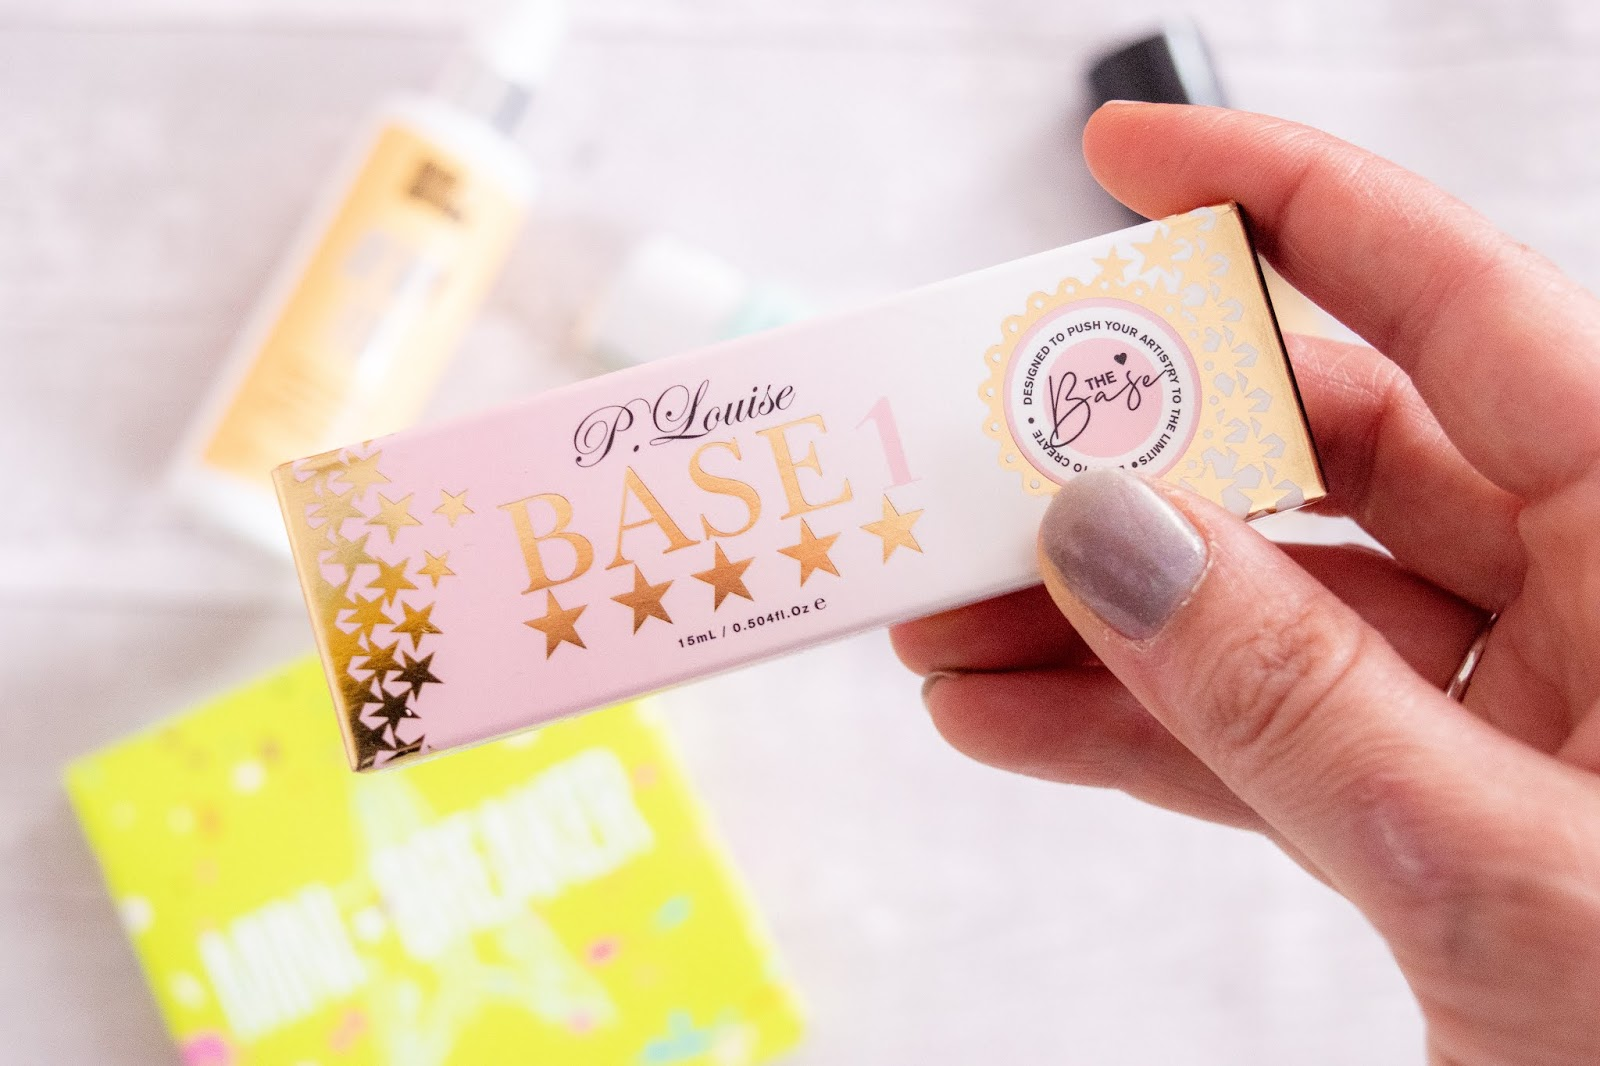 A close up of the P.Louise Base Primer box. The box is pink with gold stars around the edge.